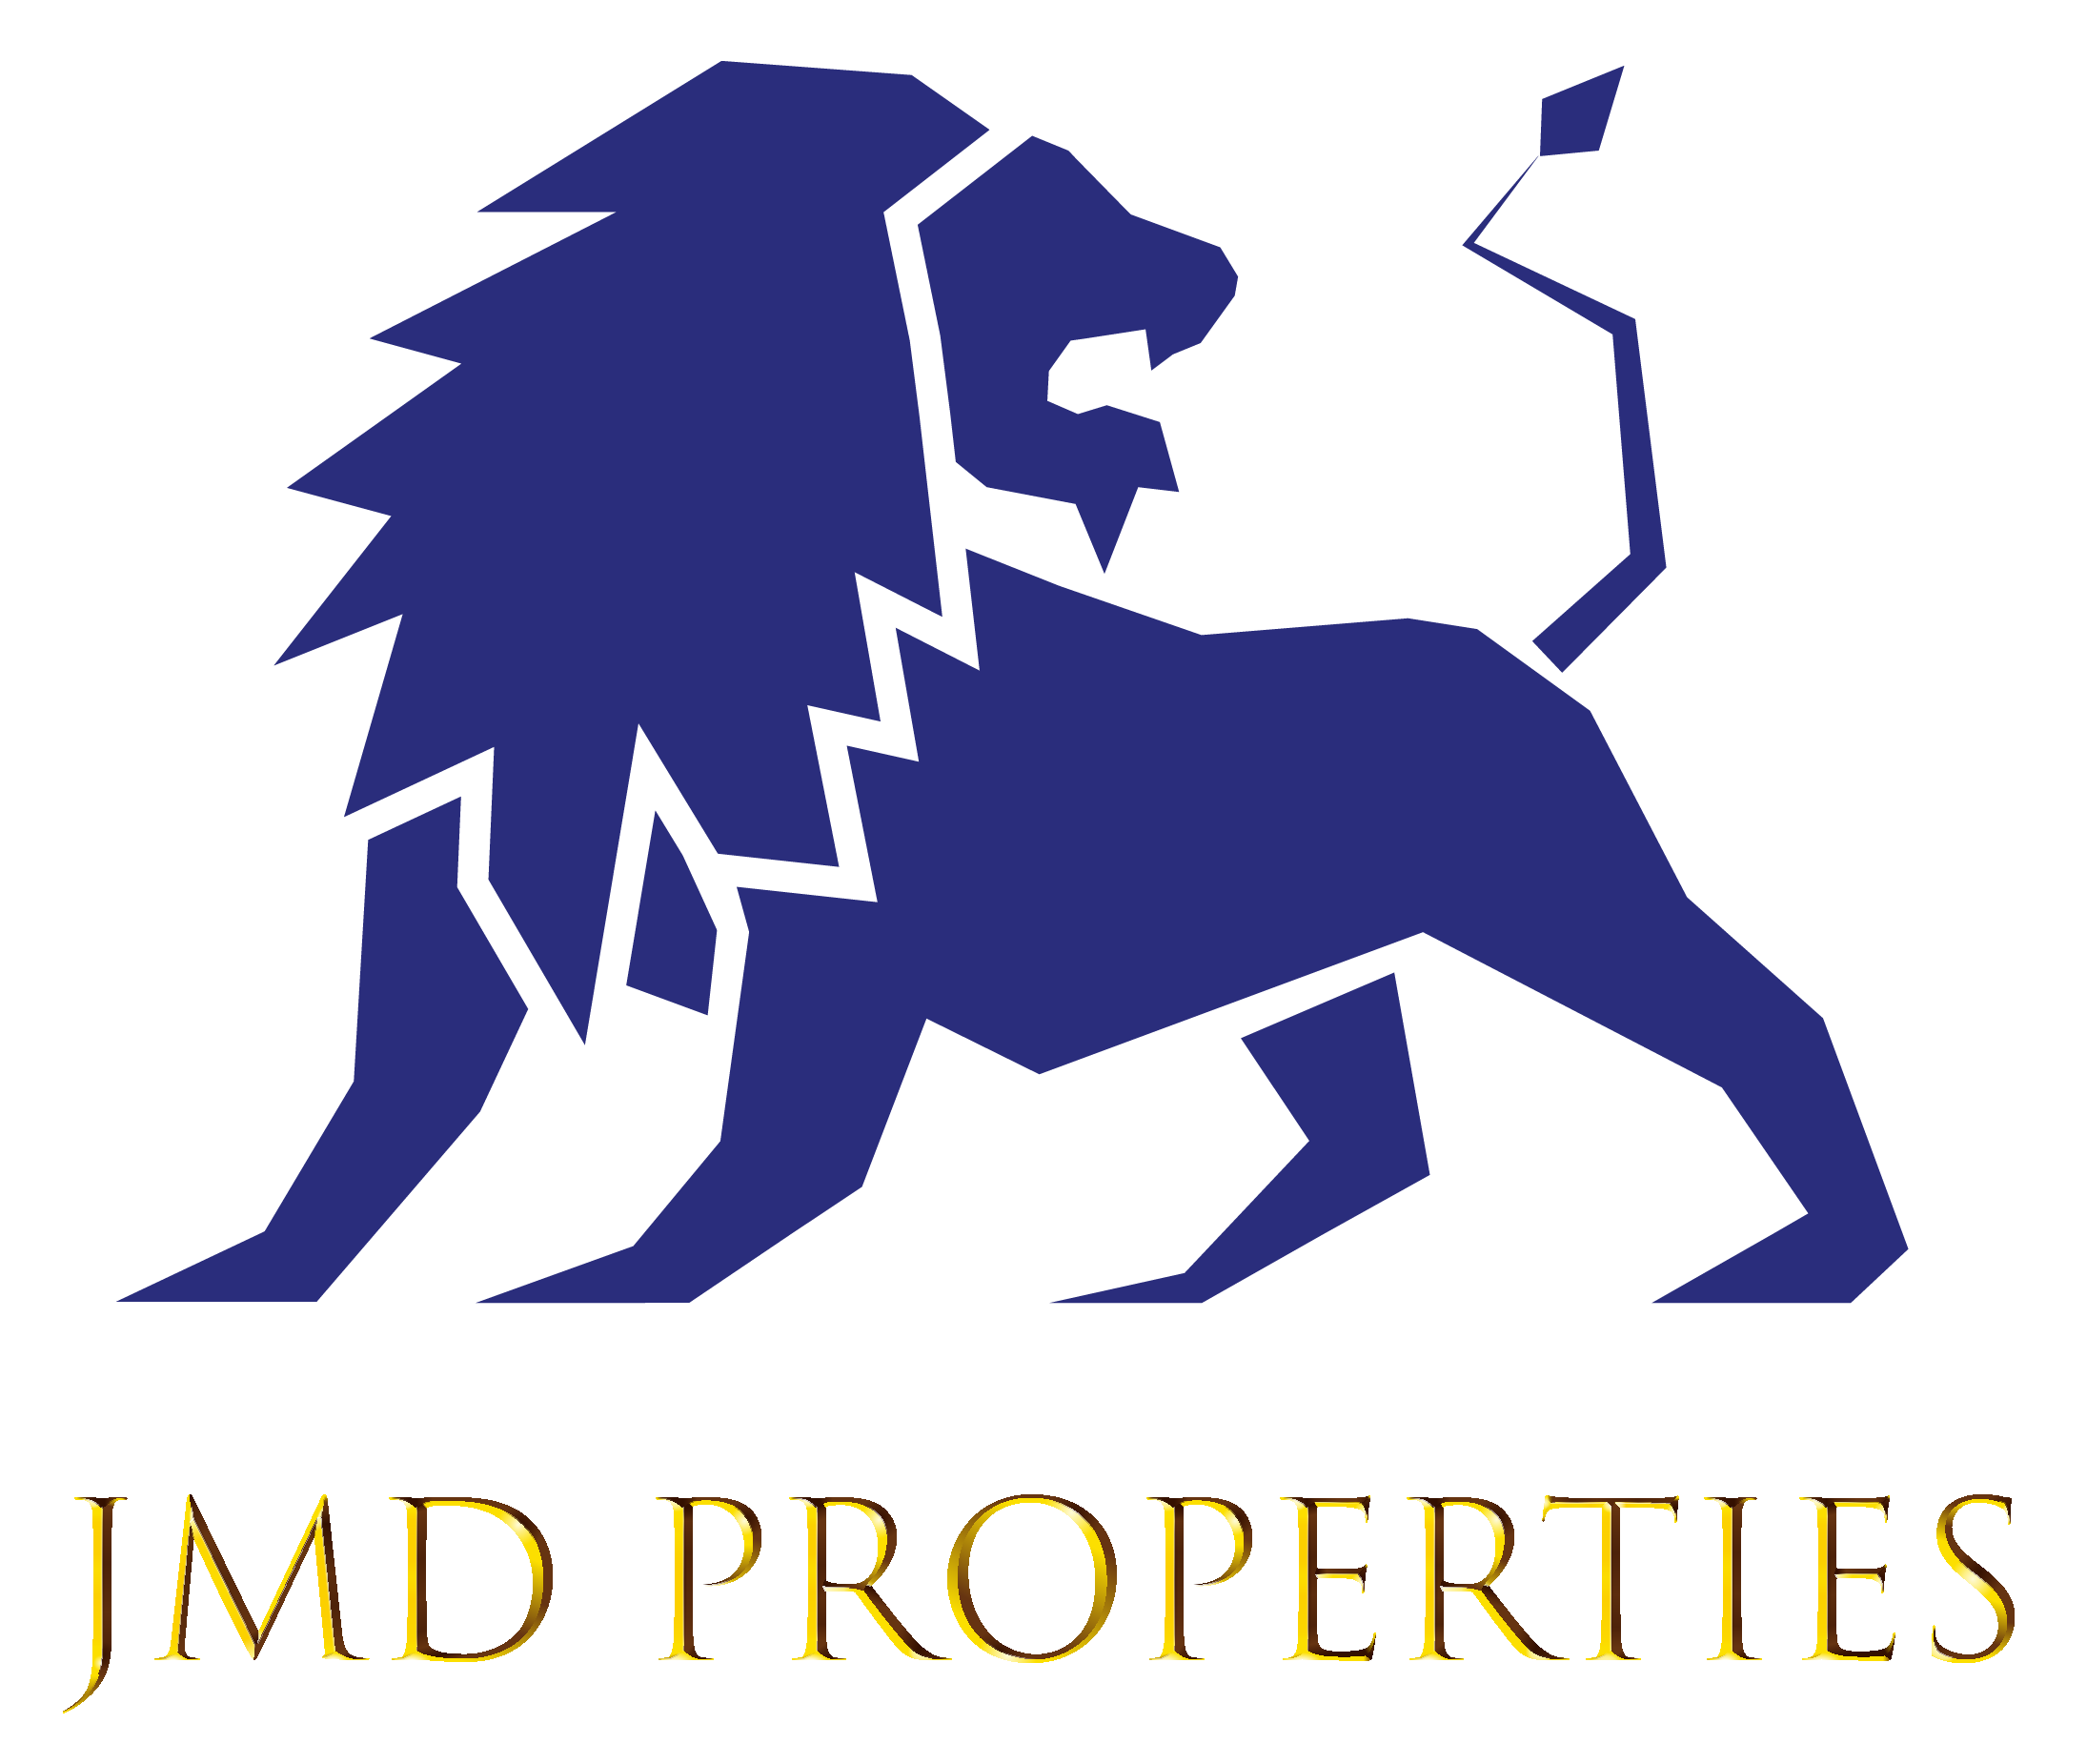 JMD Properties, CEO Daniel Wainstein, JMD public real estate company